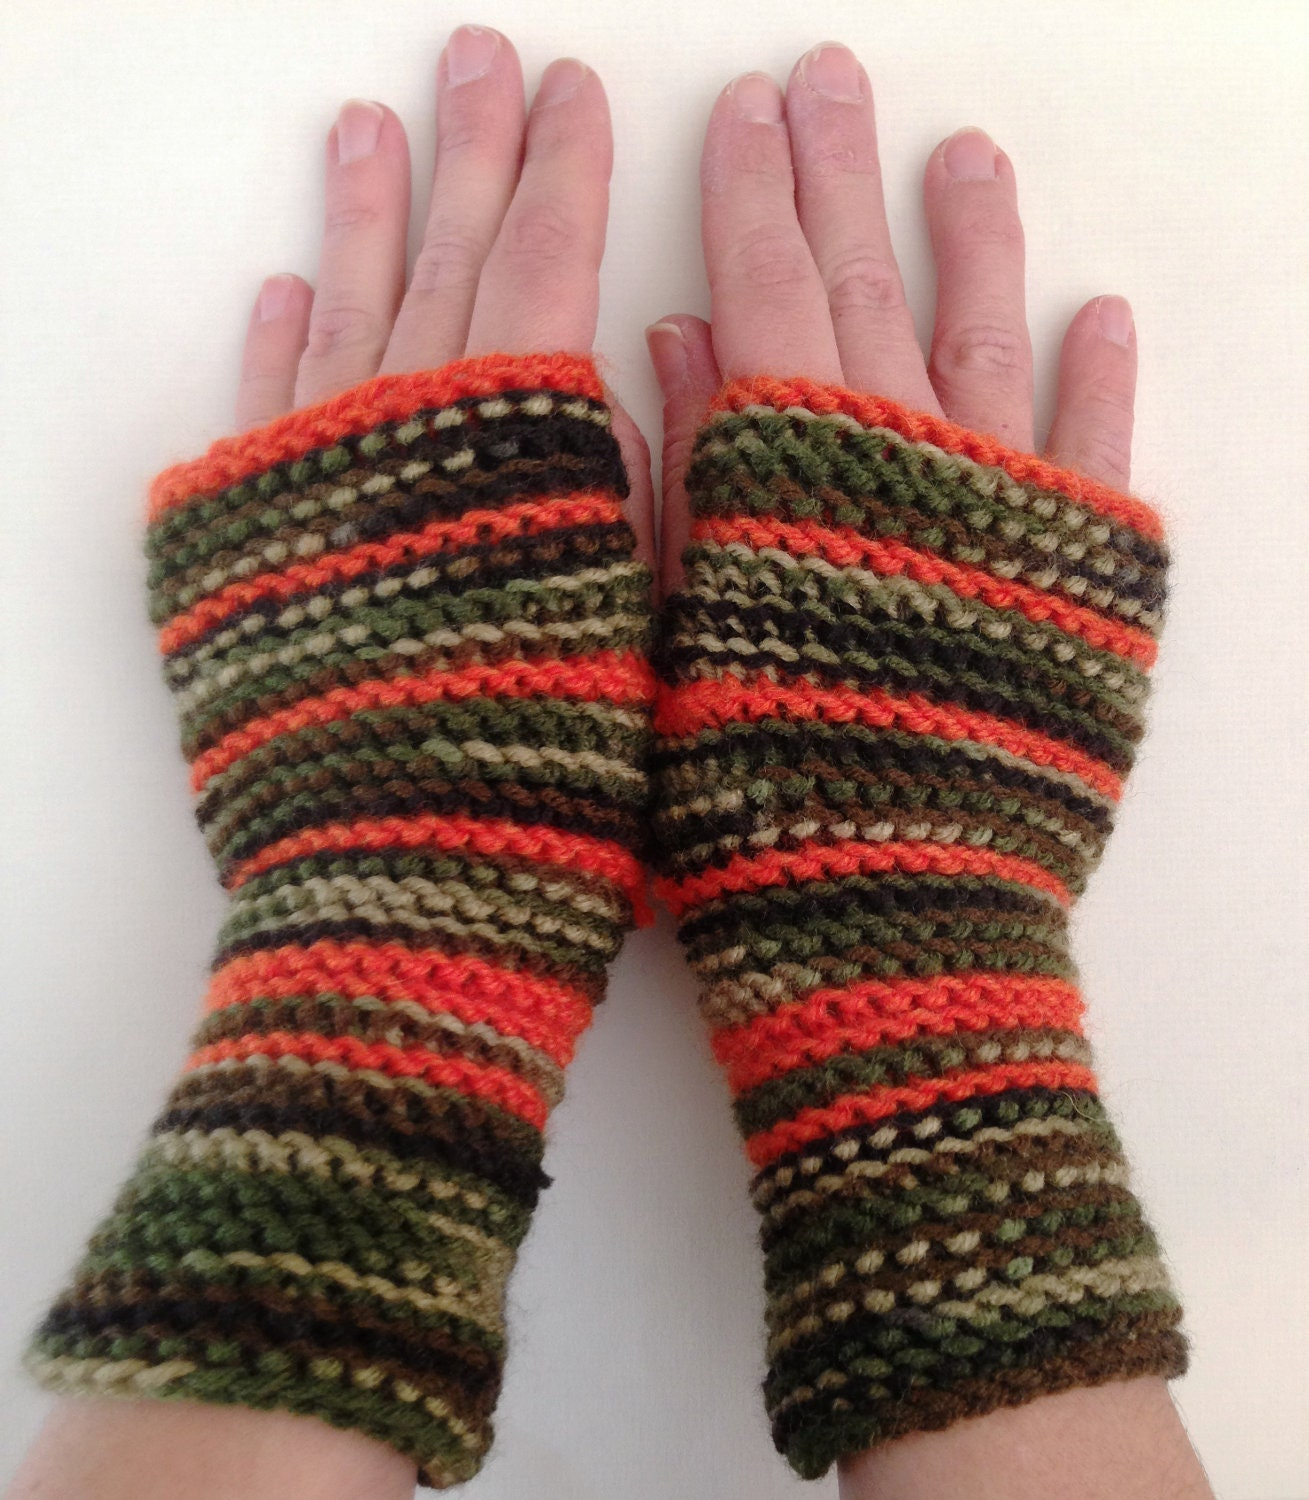 Knitting Pattern For Hunting Mittens : Fingerless gloves hand knitted Camouflage/fatigue with